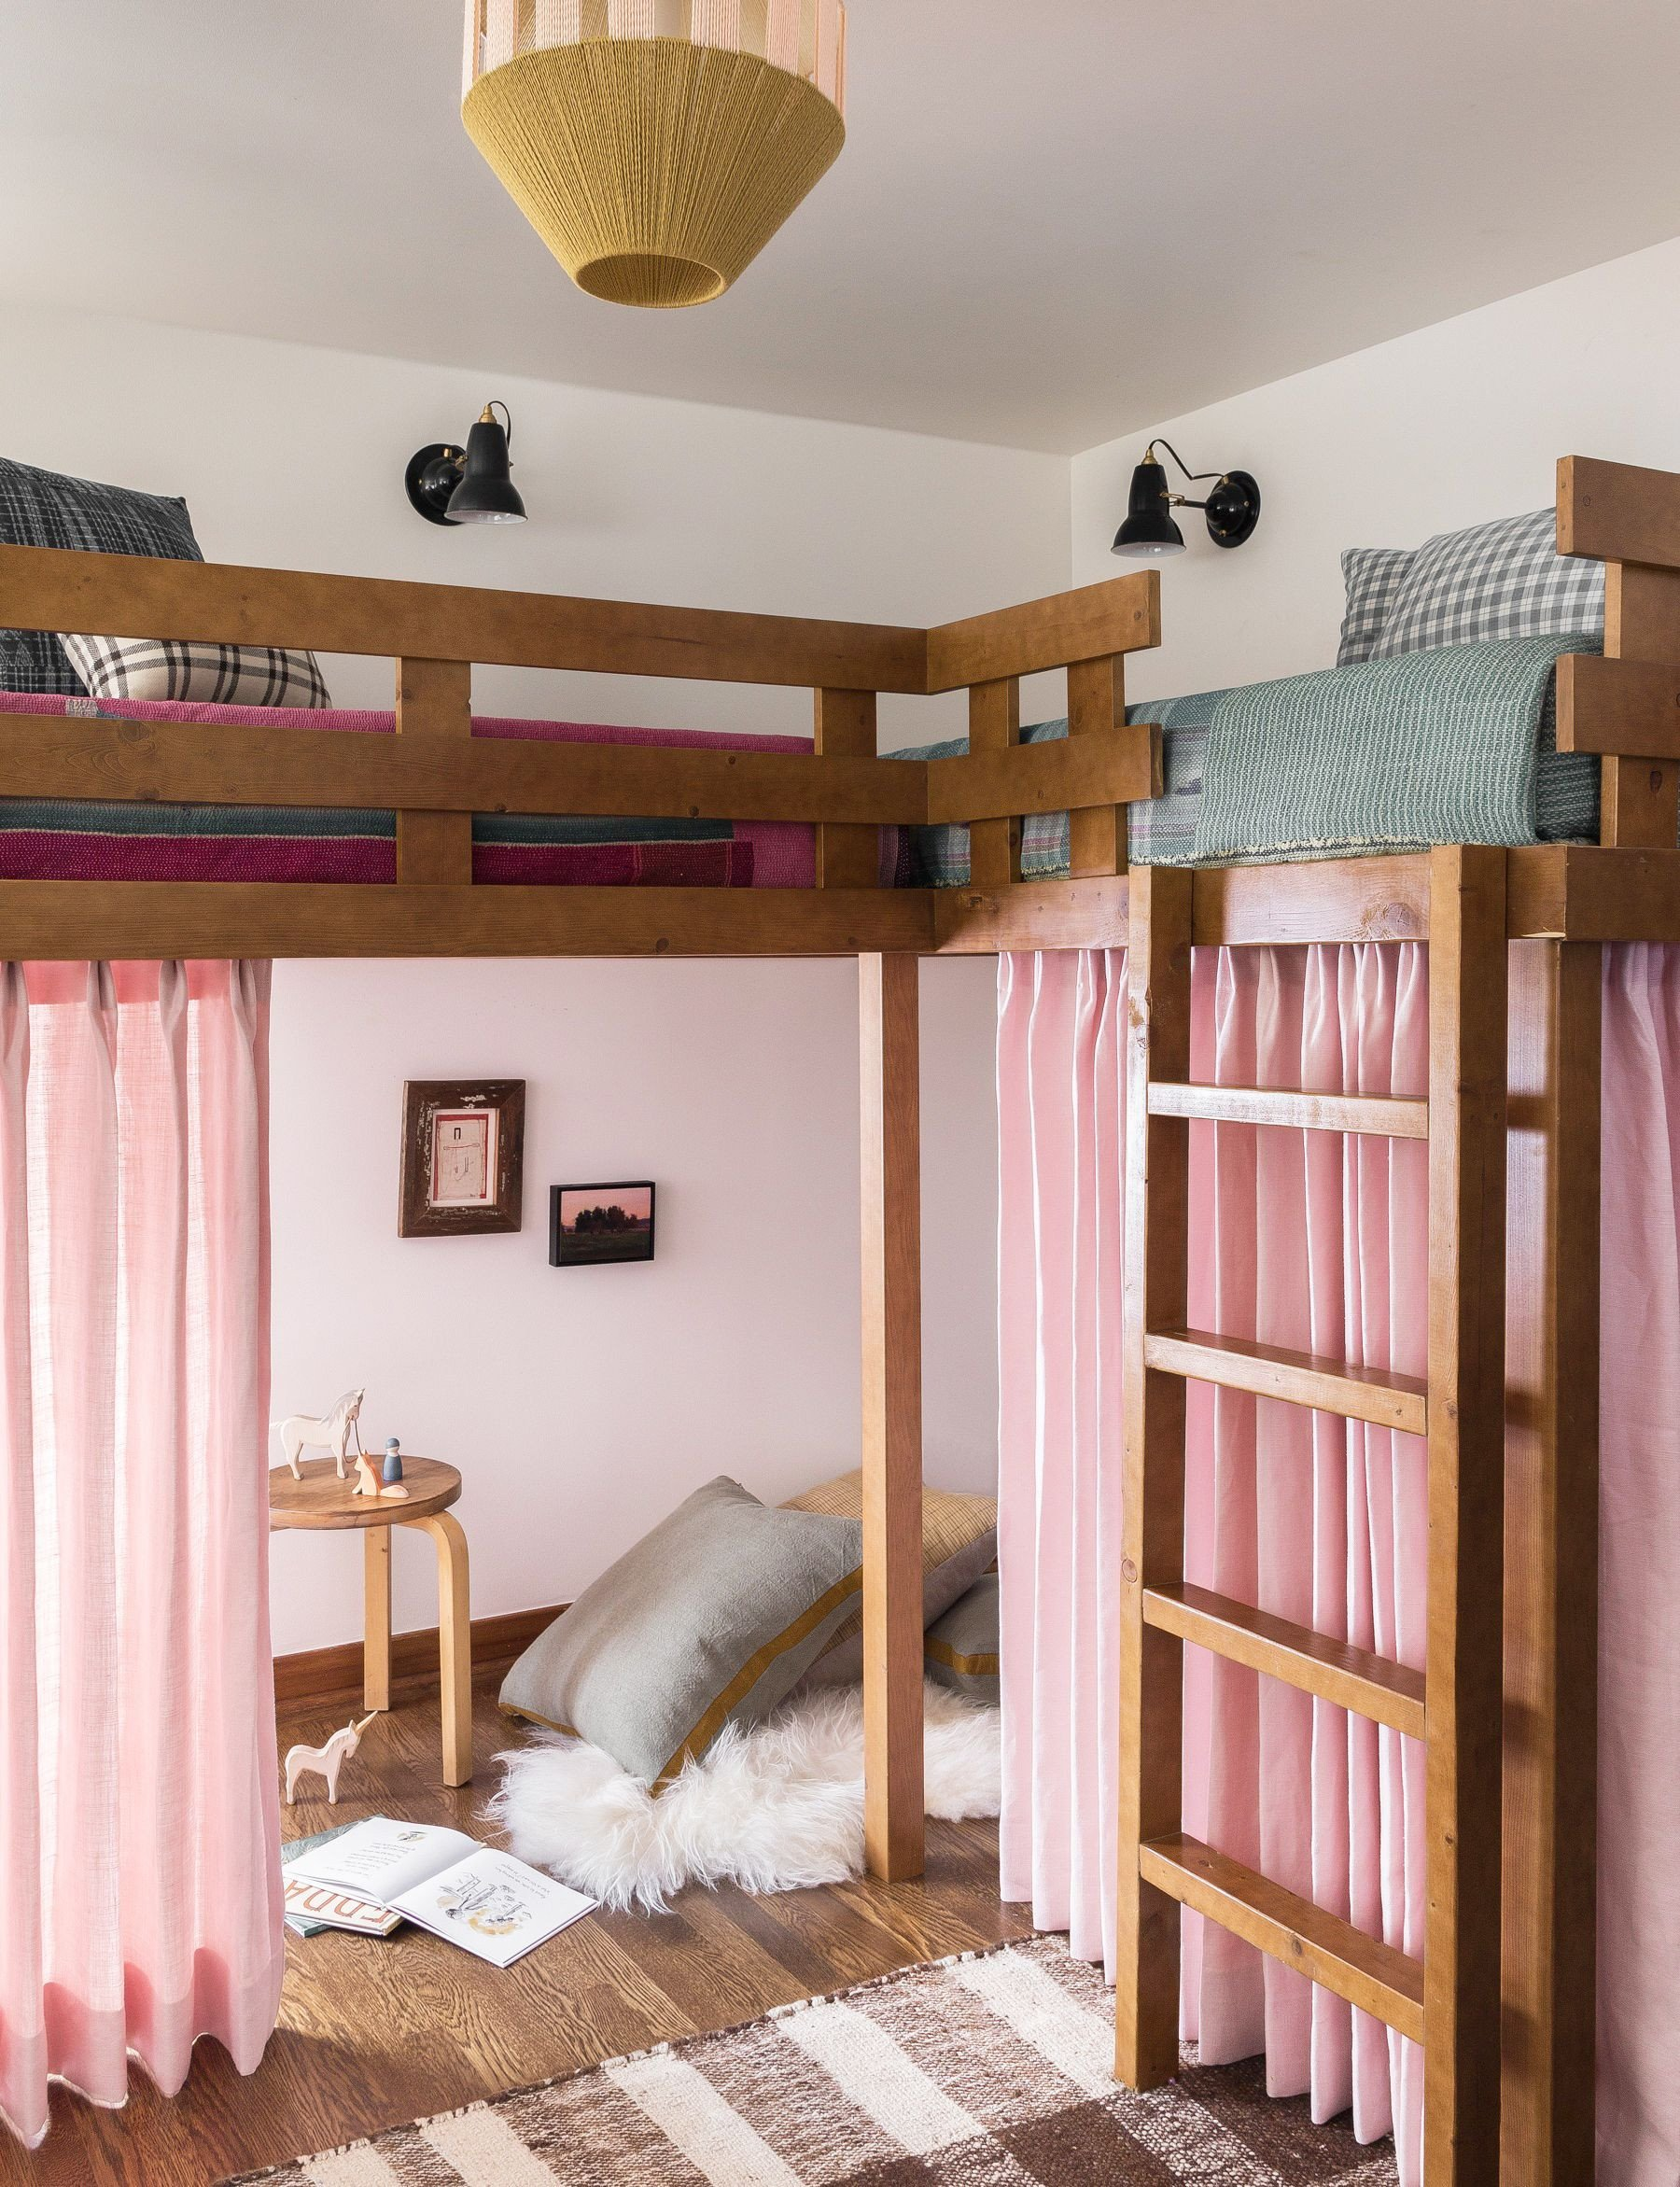 Rooms to Go Kid Bedroom Set Awesome 55 Kids Room Design Ideas Cool Kids Bedroom Decor and Style